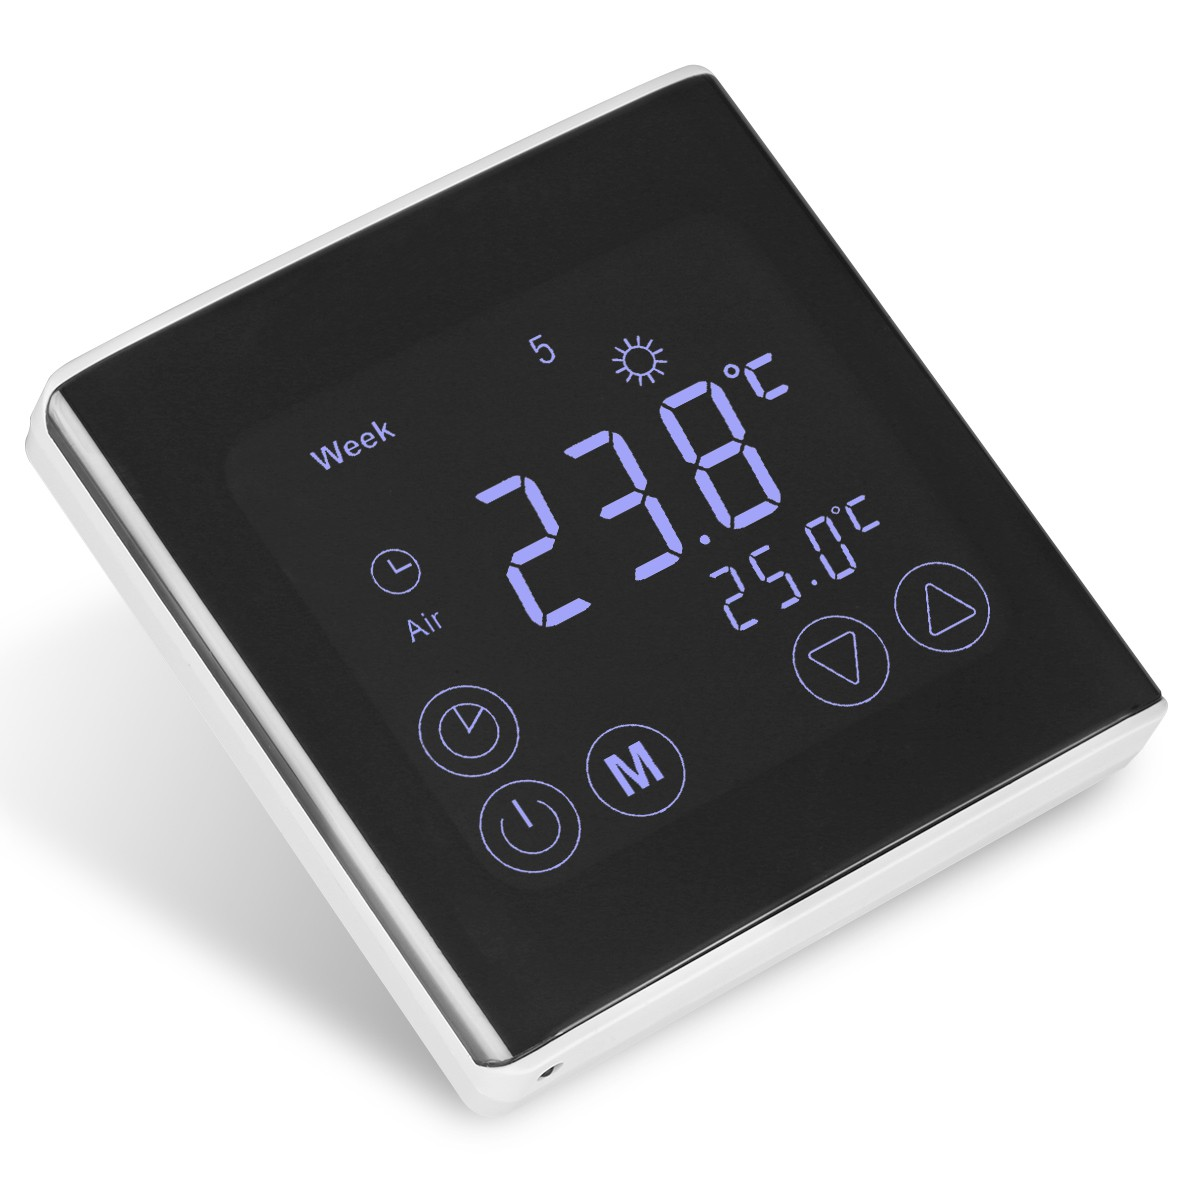 Thermostat Touch Control Temperature Sensor System LCD Display Device Heat Cool Electric Sense Operator Switch Automatic Signal